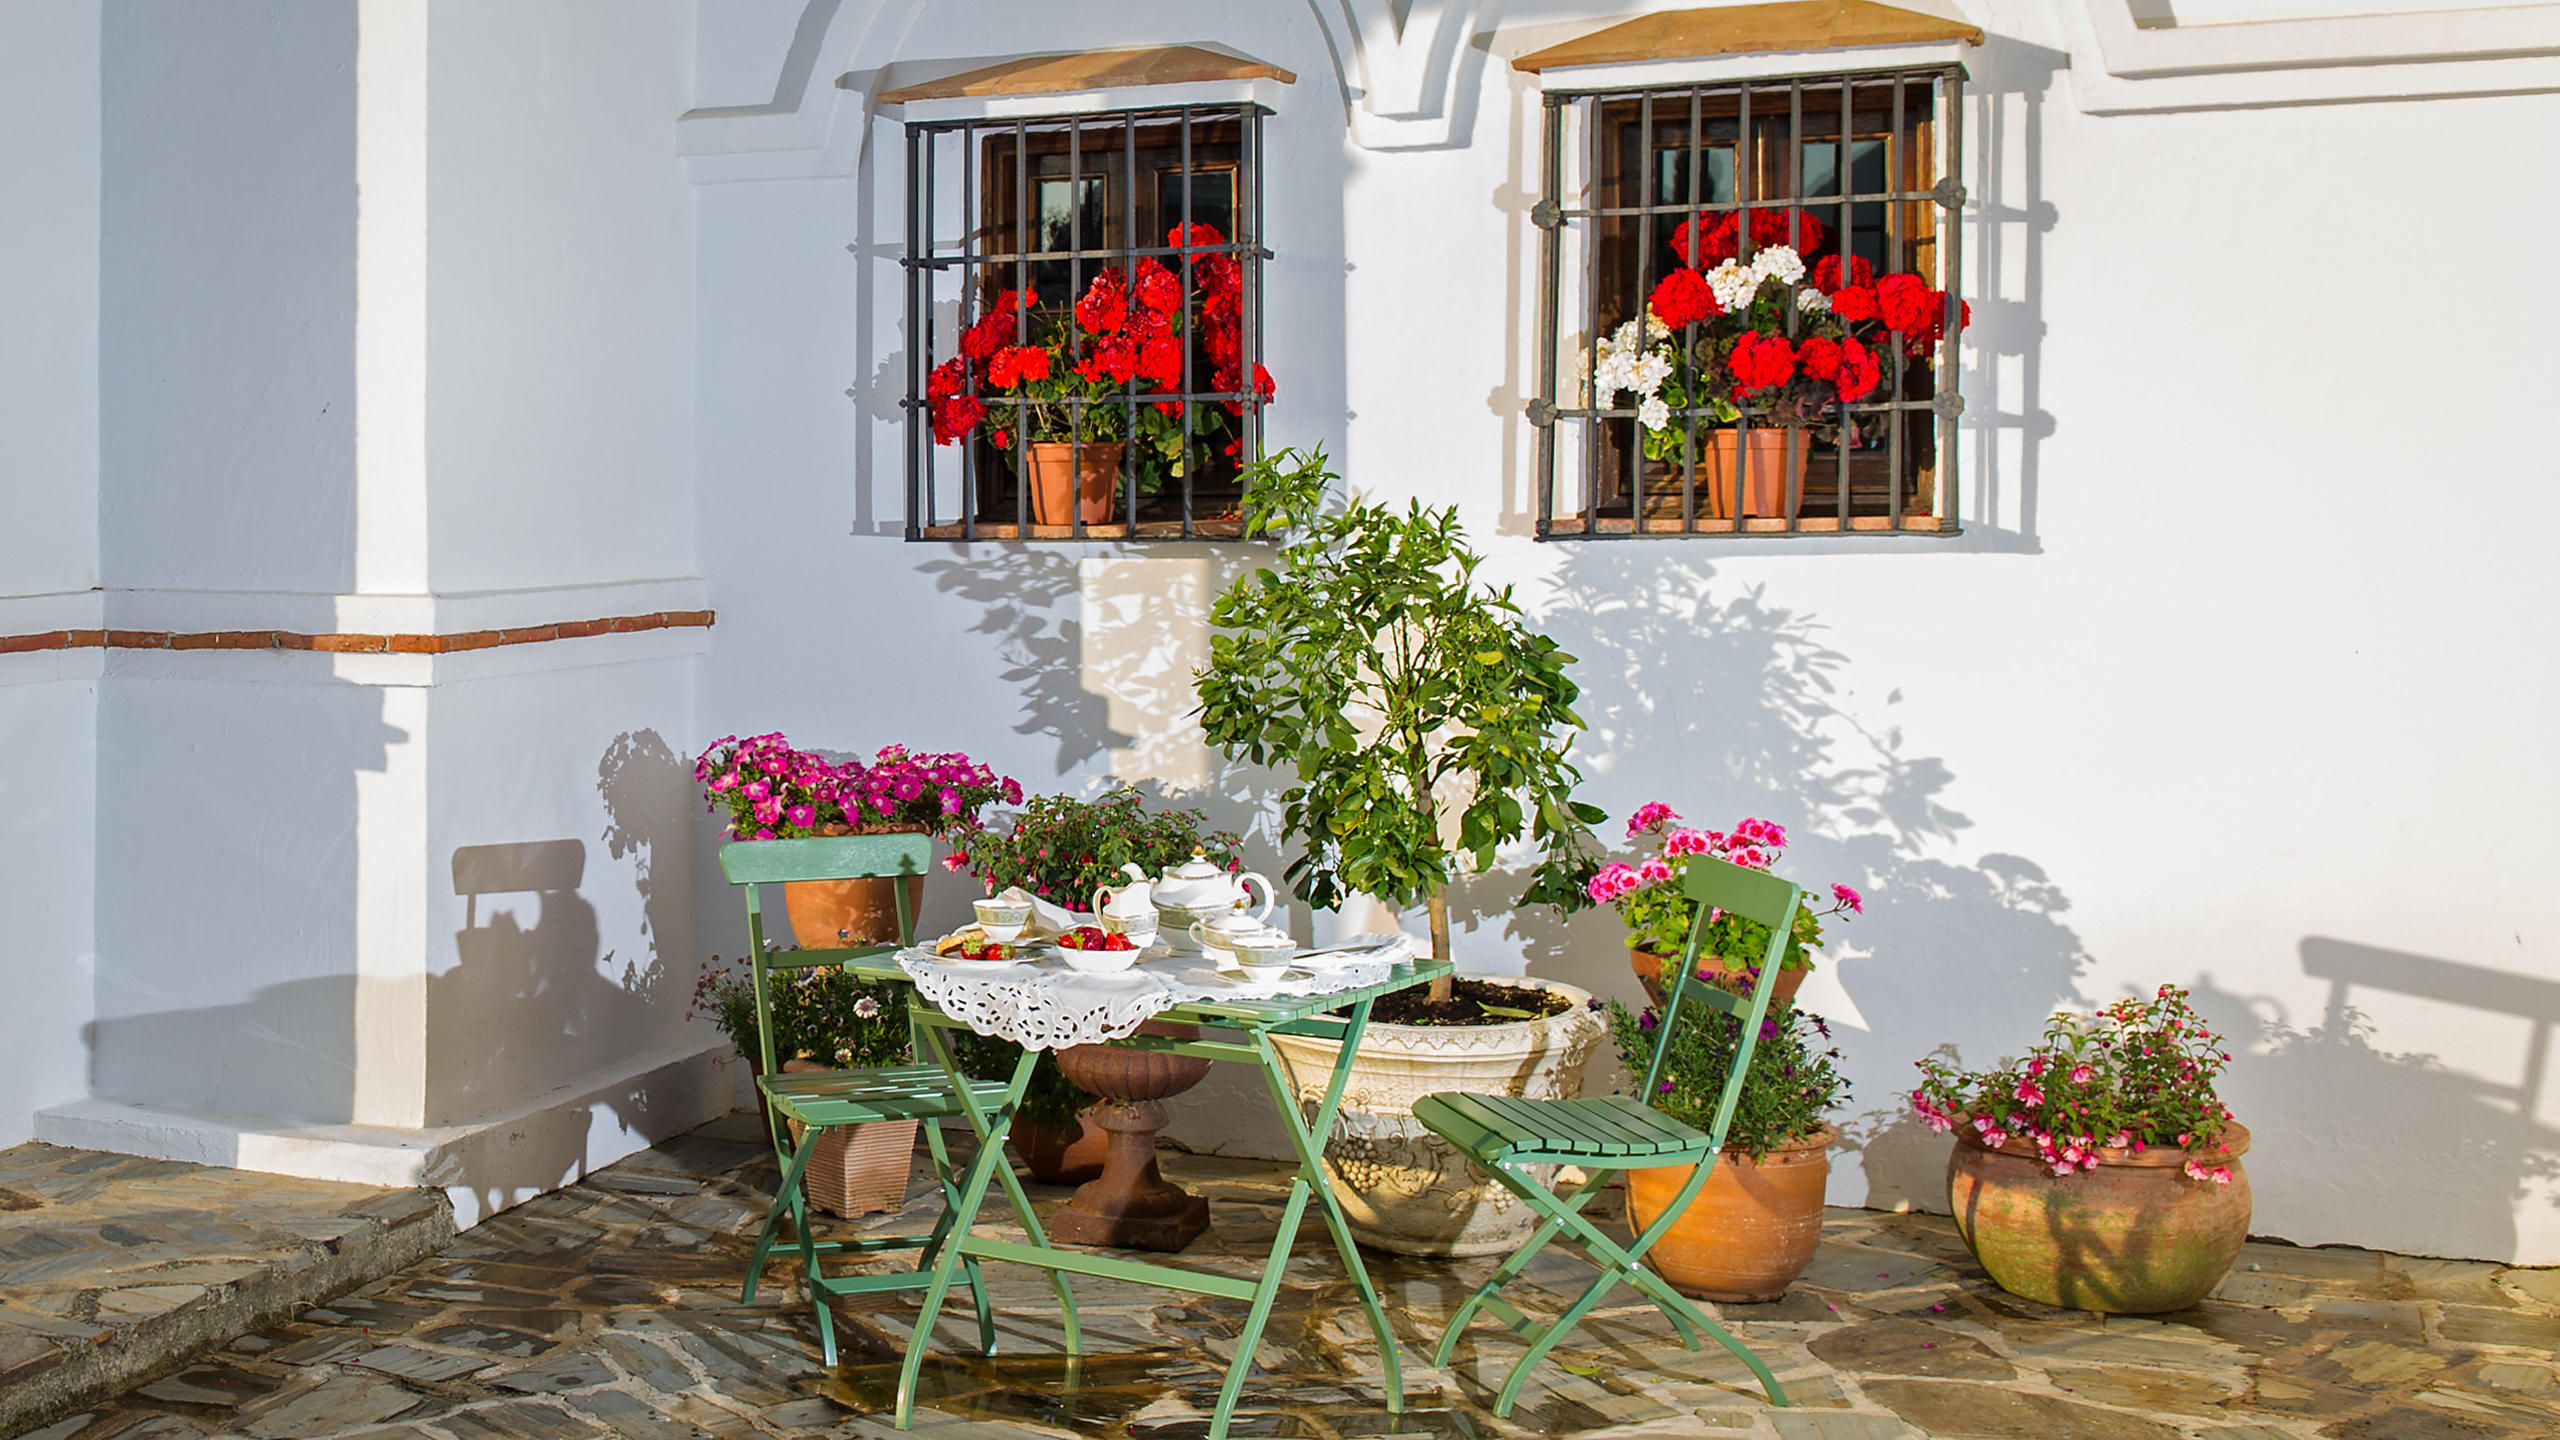 Luxury Villa Hotel Terrace in Andalucia, Spain